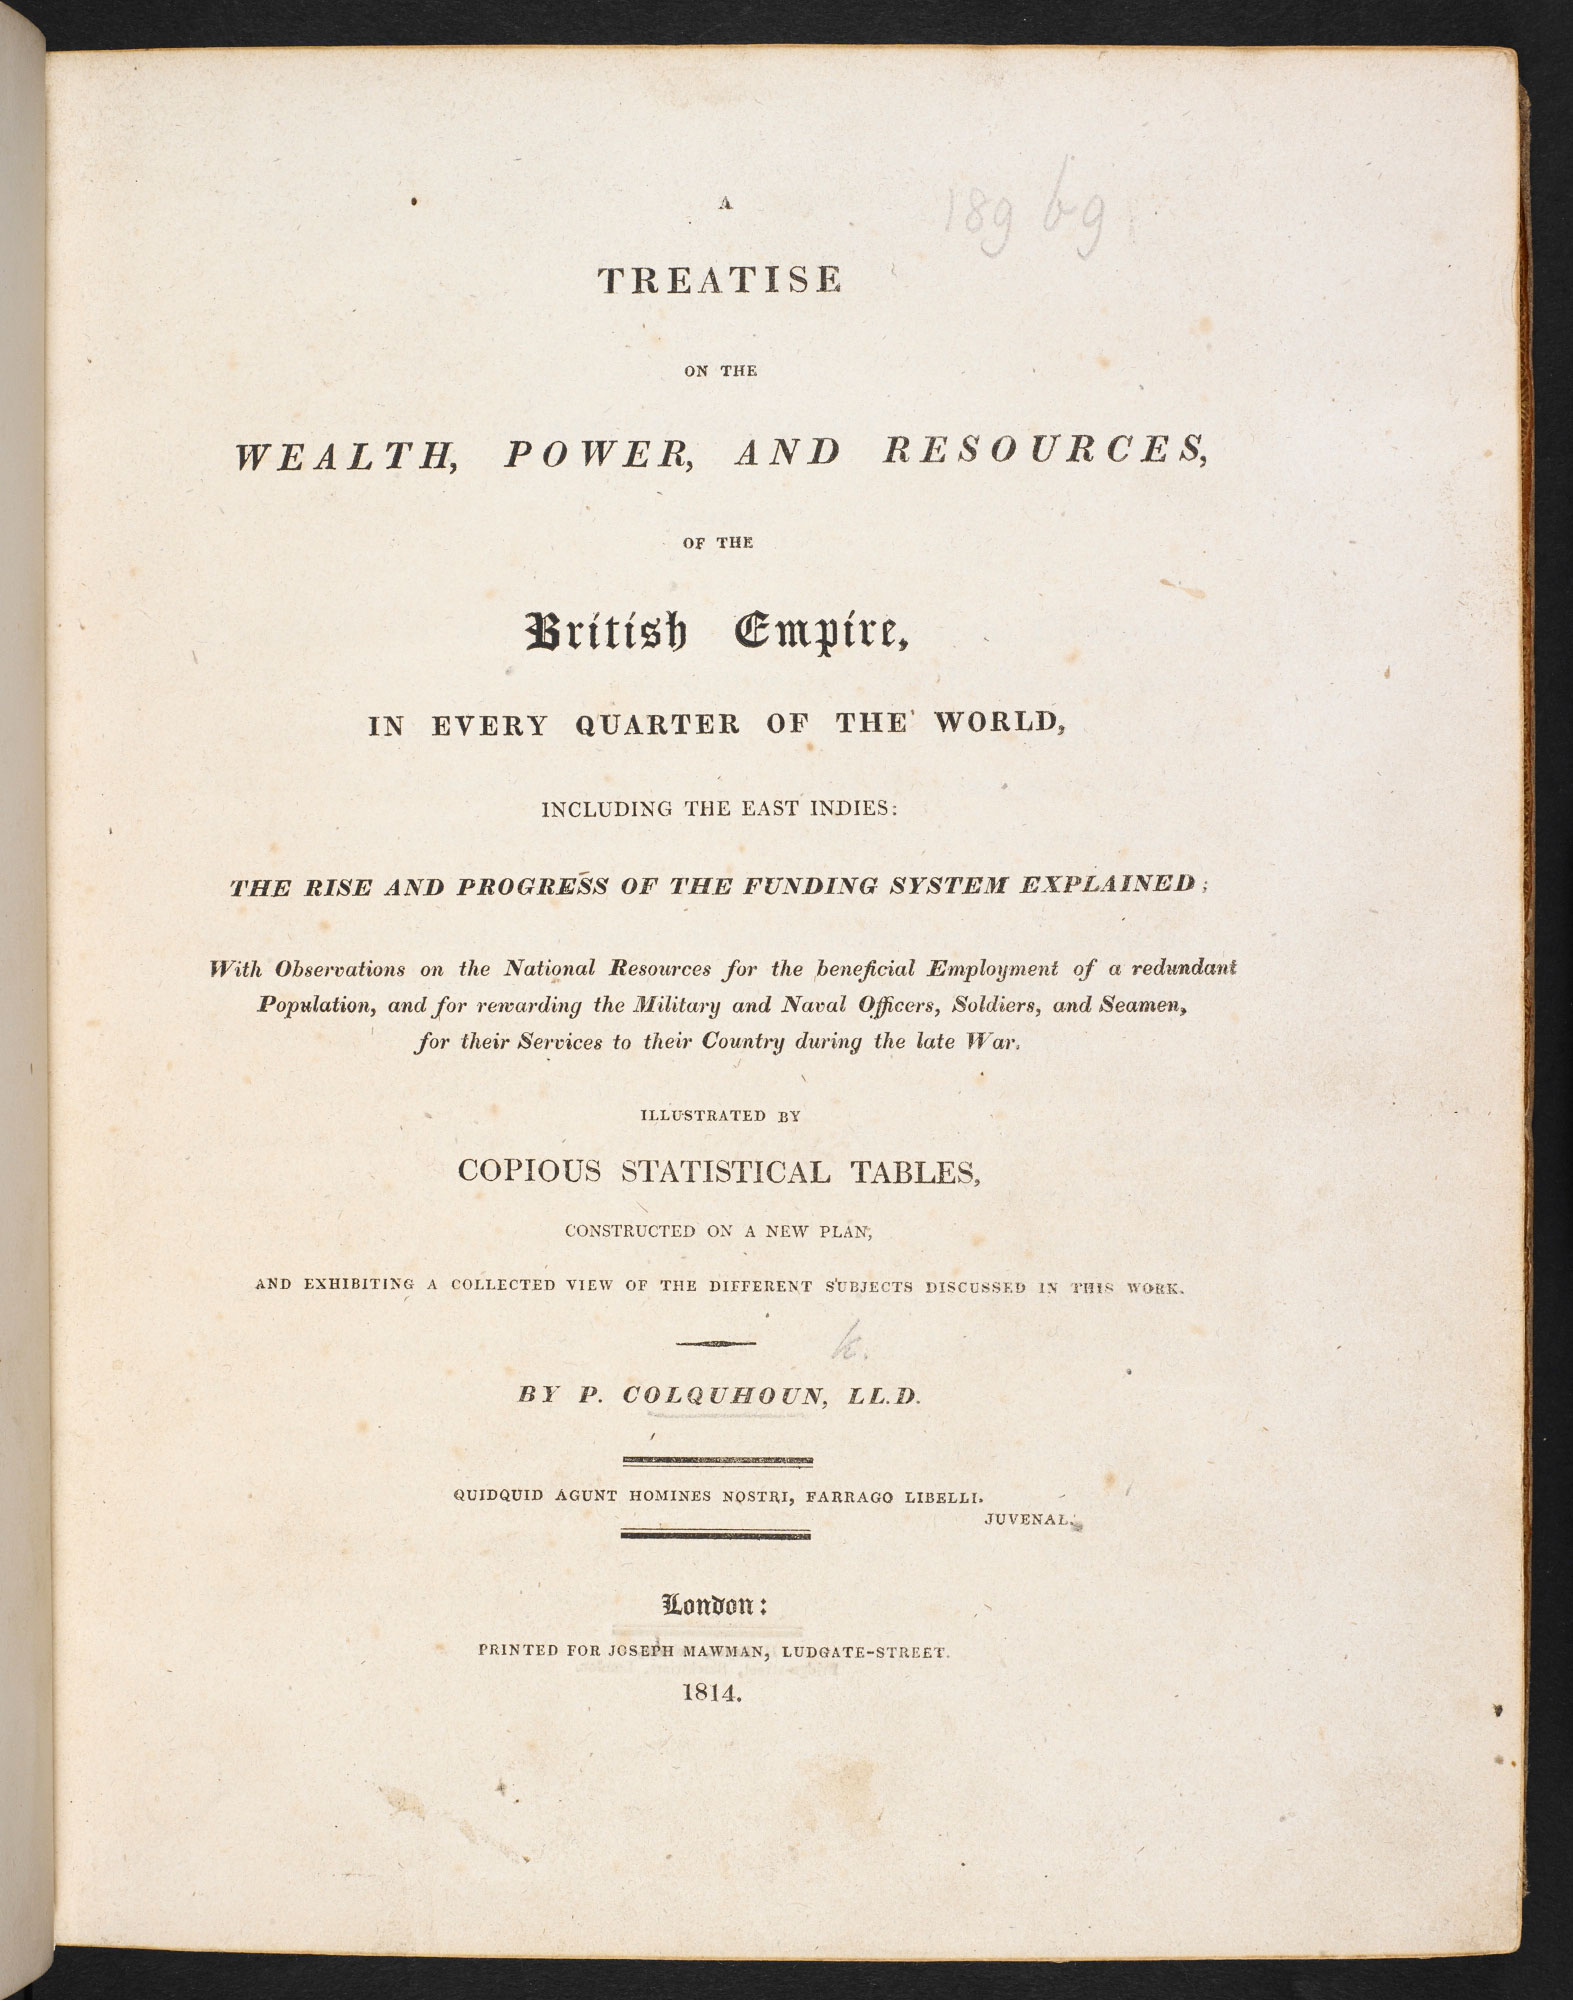 Treatise on the Wealth, Power and Resources of the British Empire